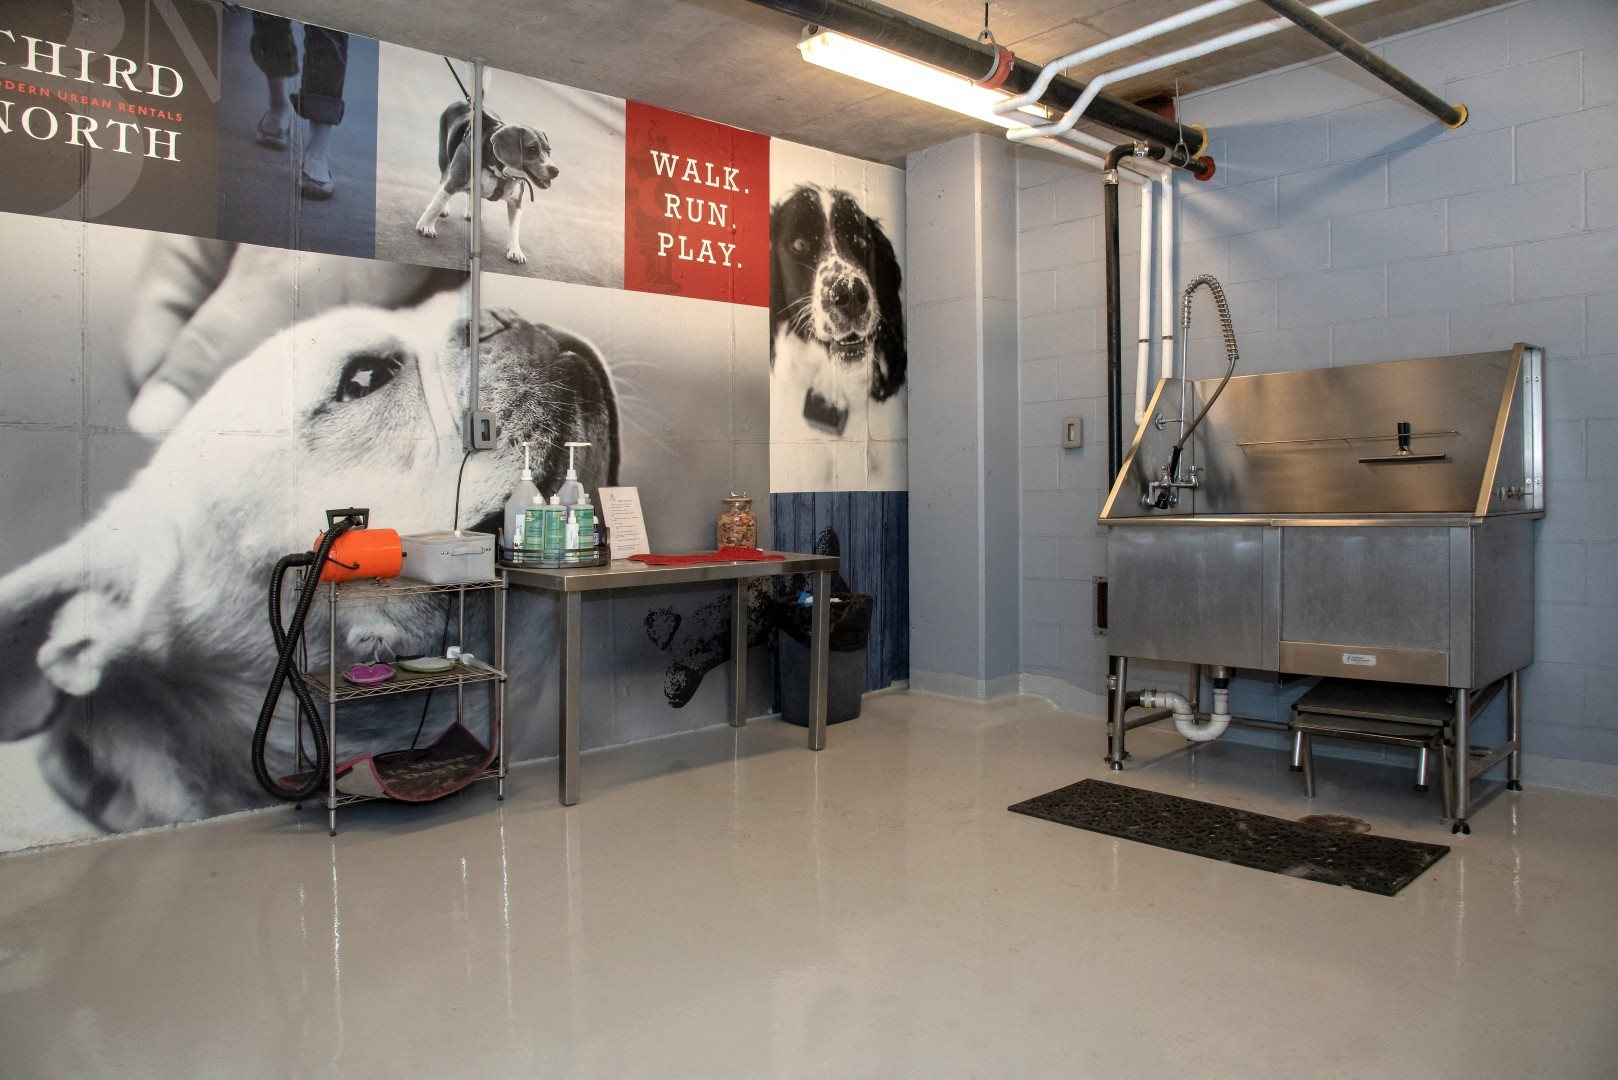 Pet Spa And Grooming at Third North, Minneapolis